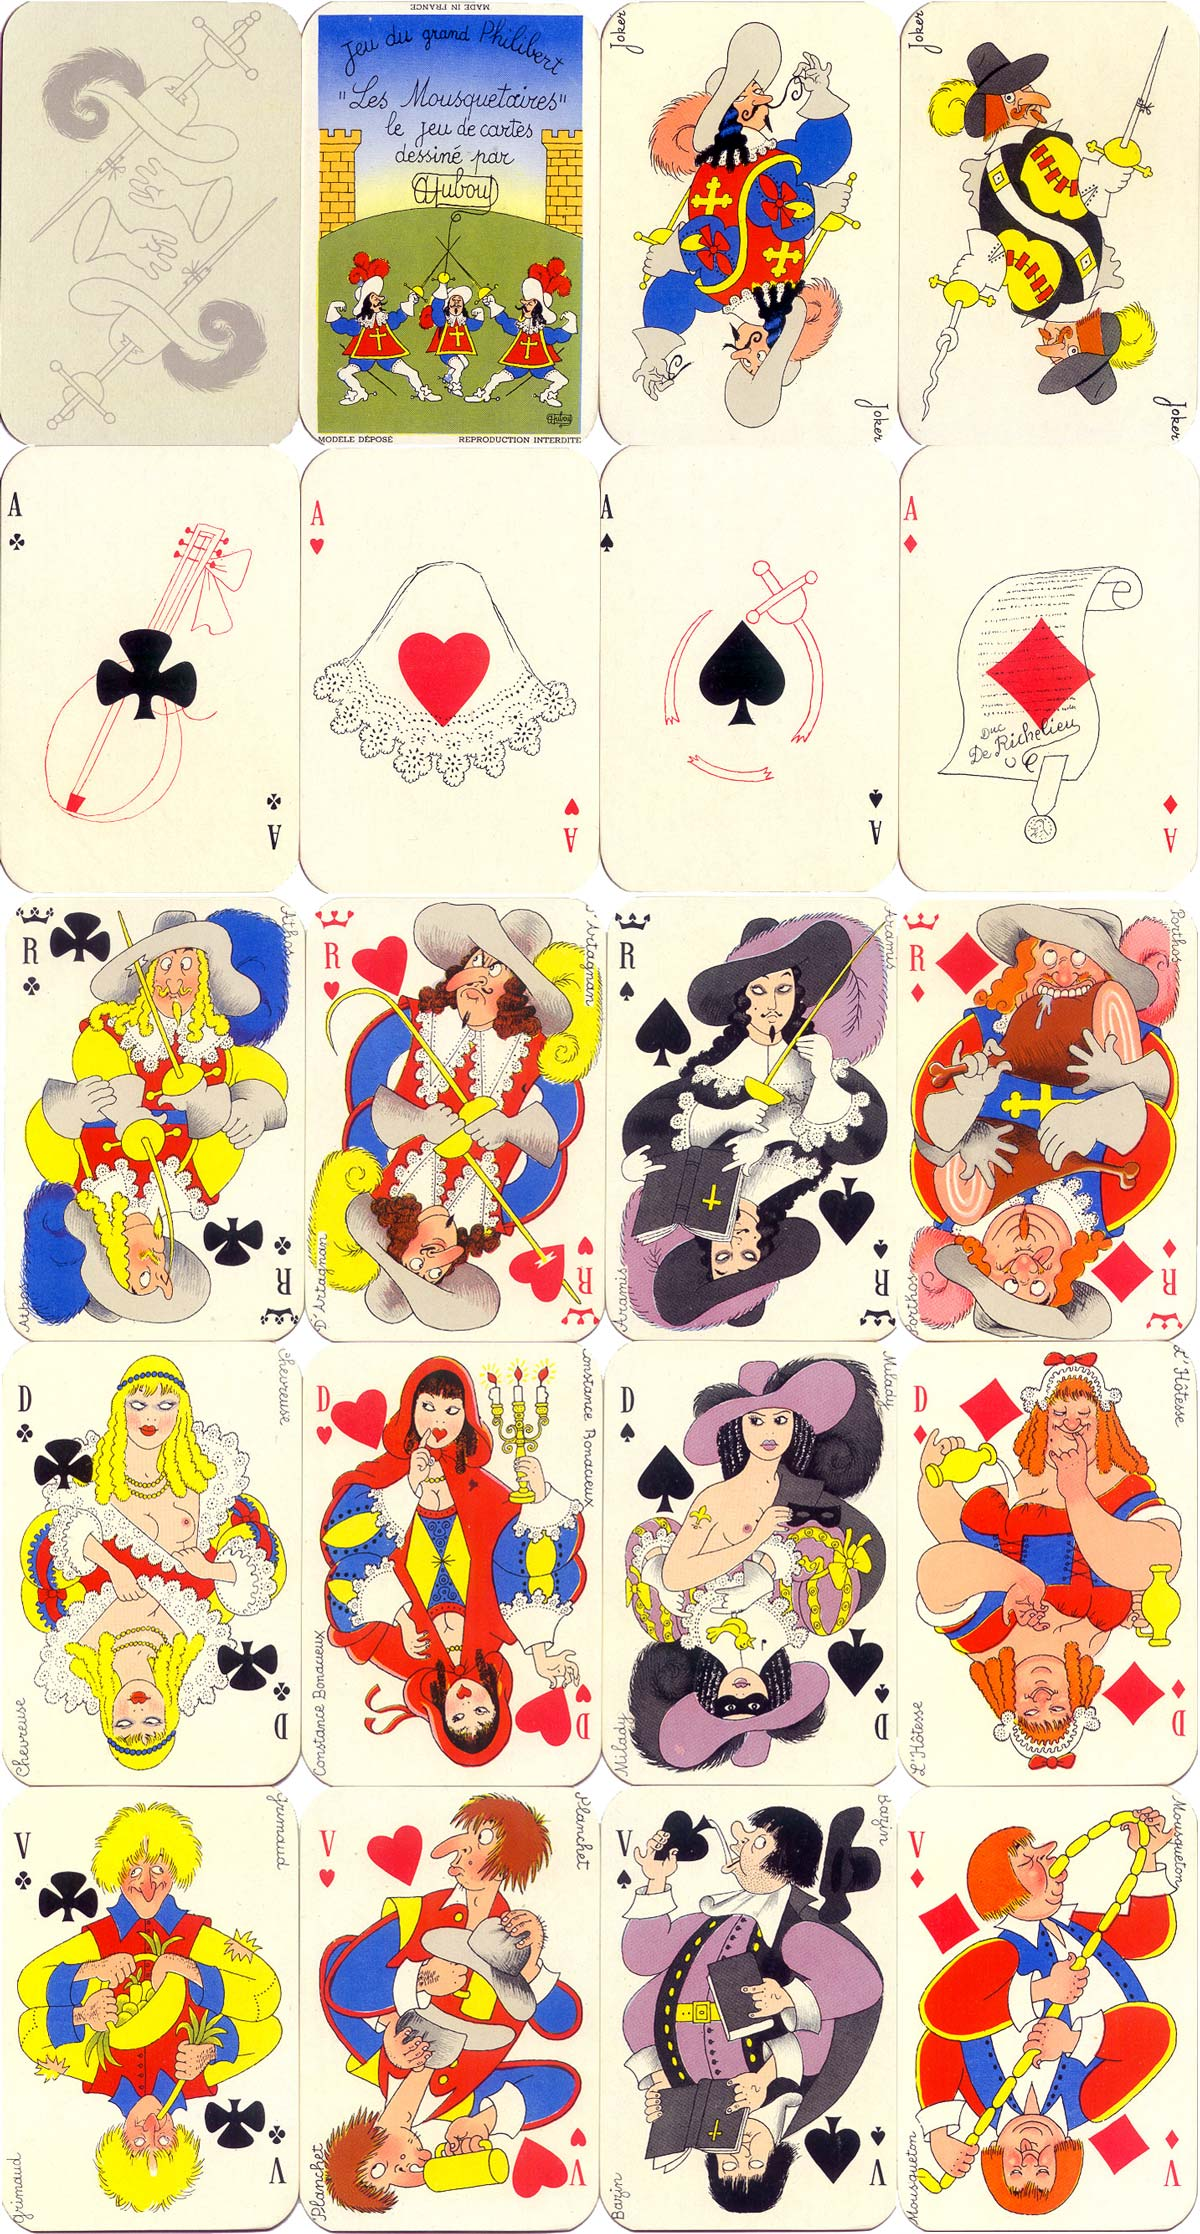 'Les Mousquetaires' playing cards, designed by Albert Dubout, c.1954